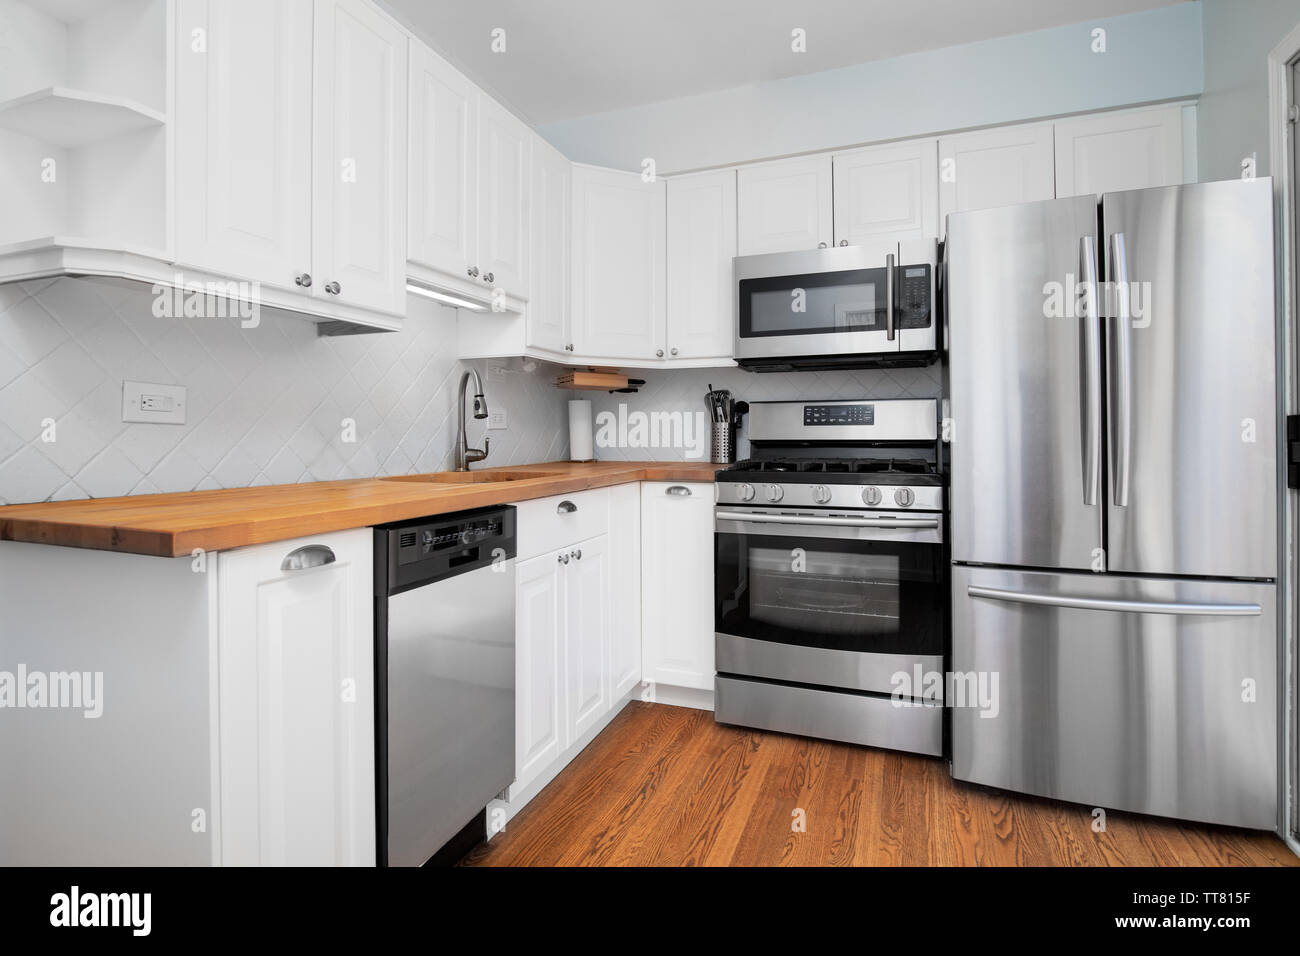 A Small Kitchen With Stainless Steel Appliances White